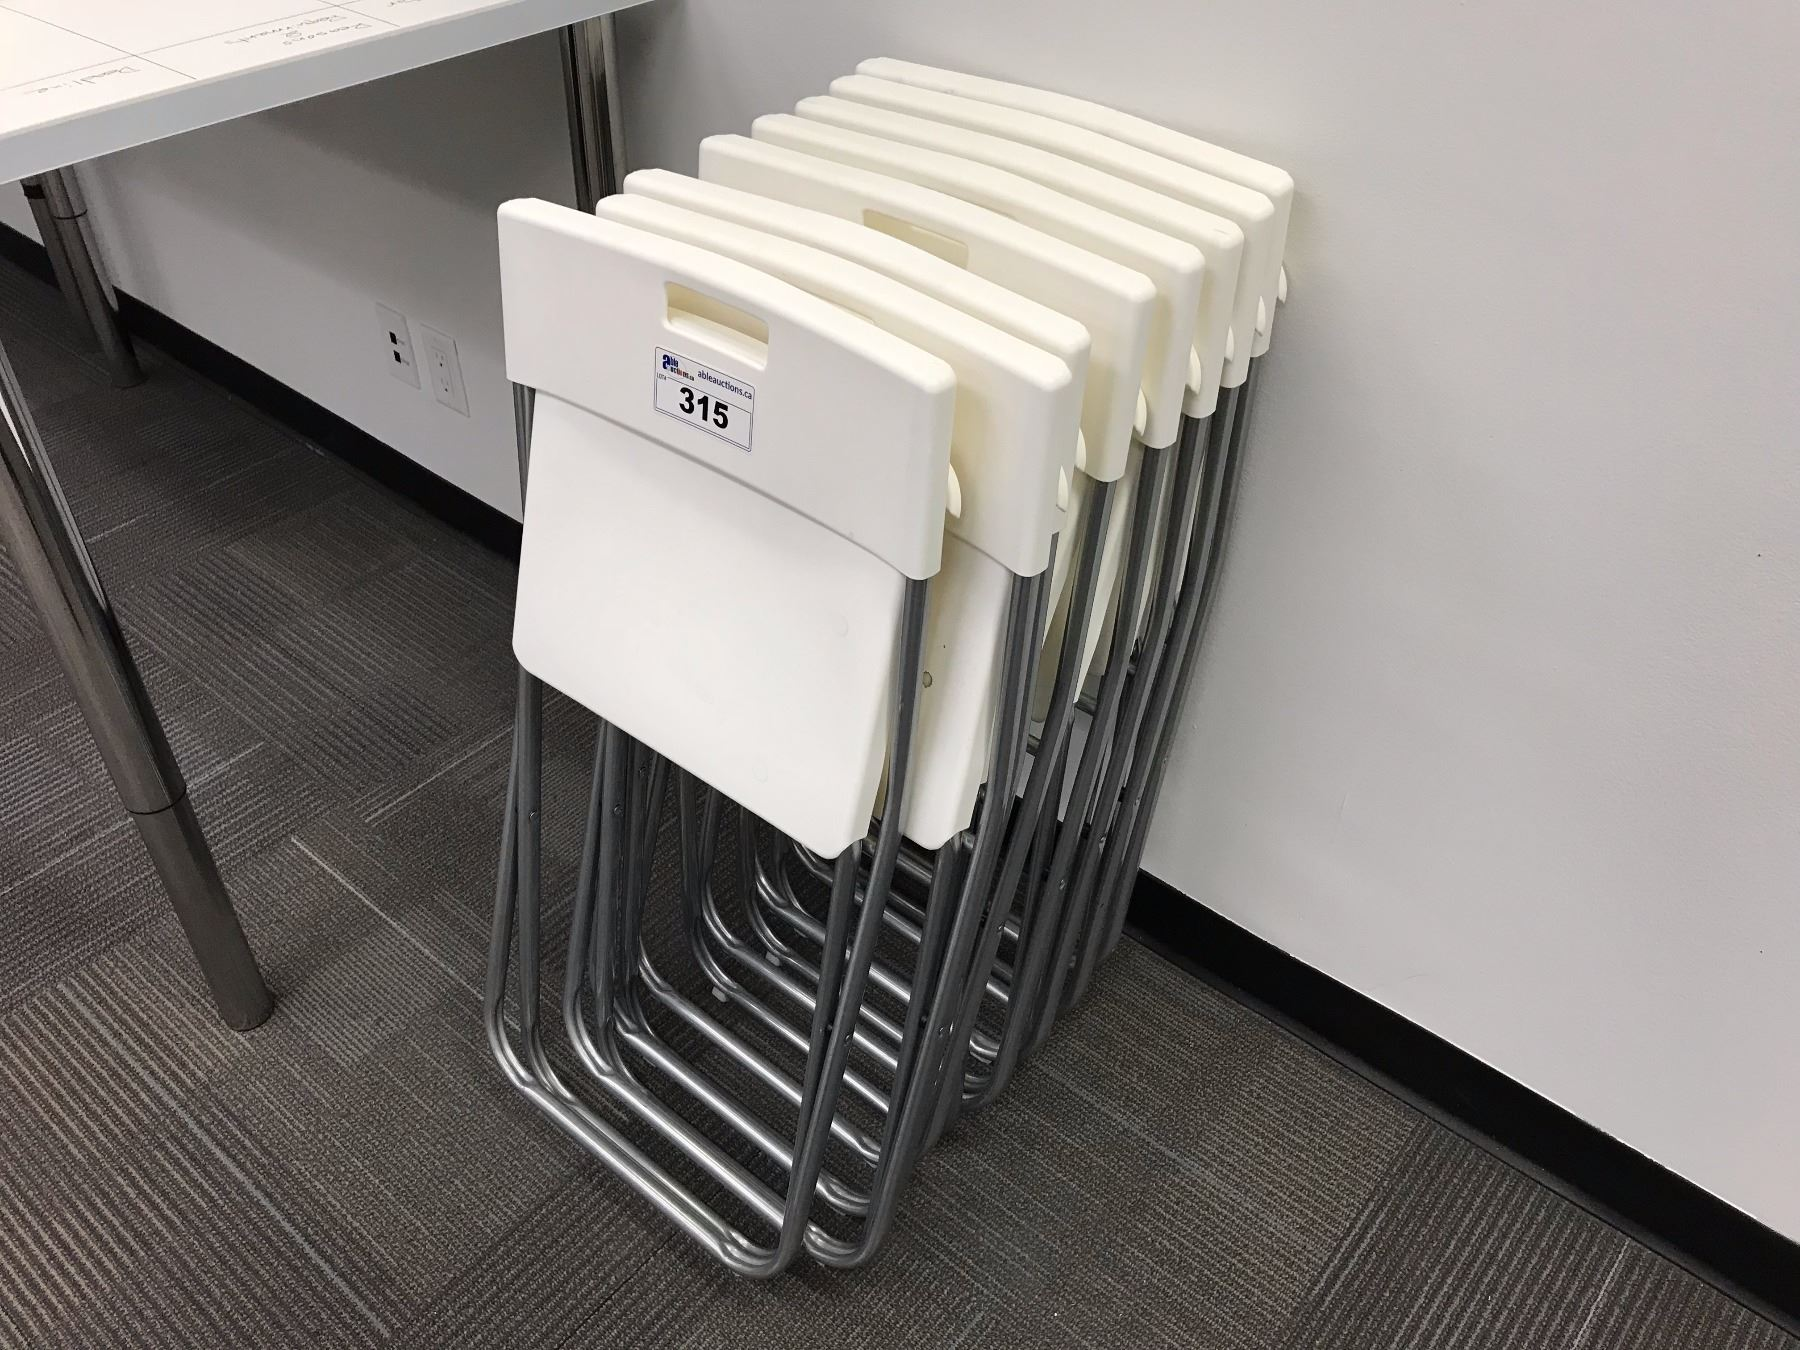 STACK OF 8 WHITE PLASTIC FOLDING CHAIRS